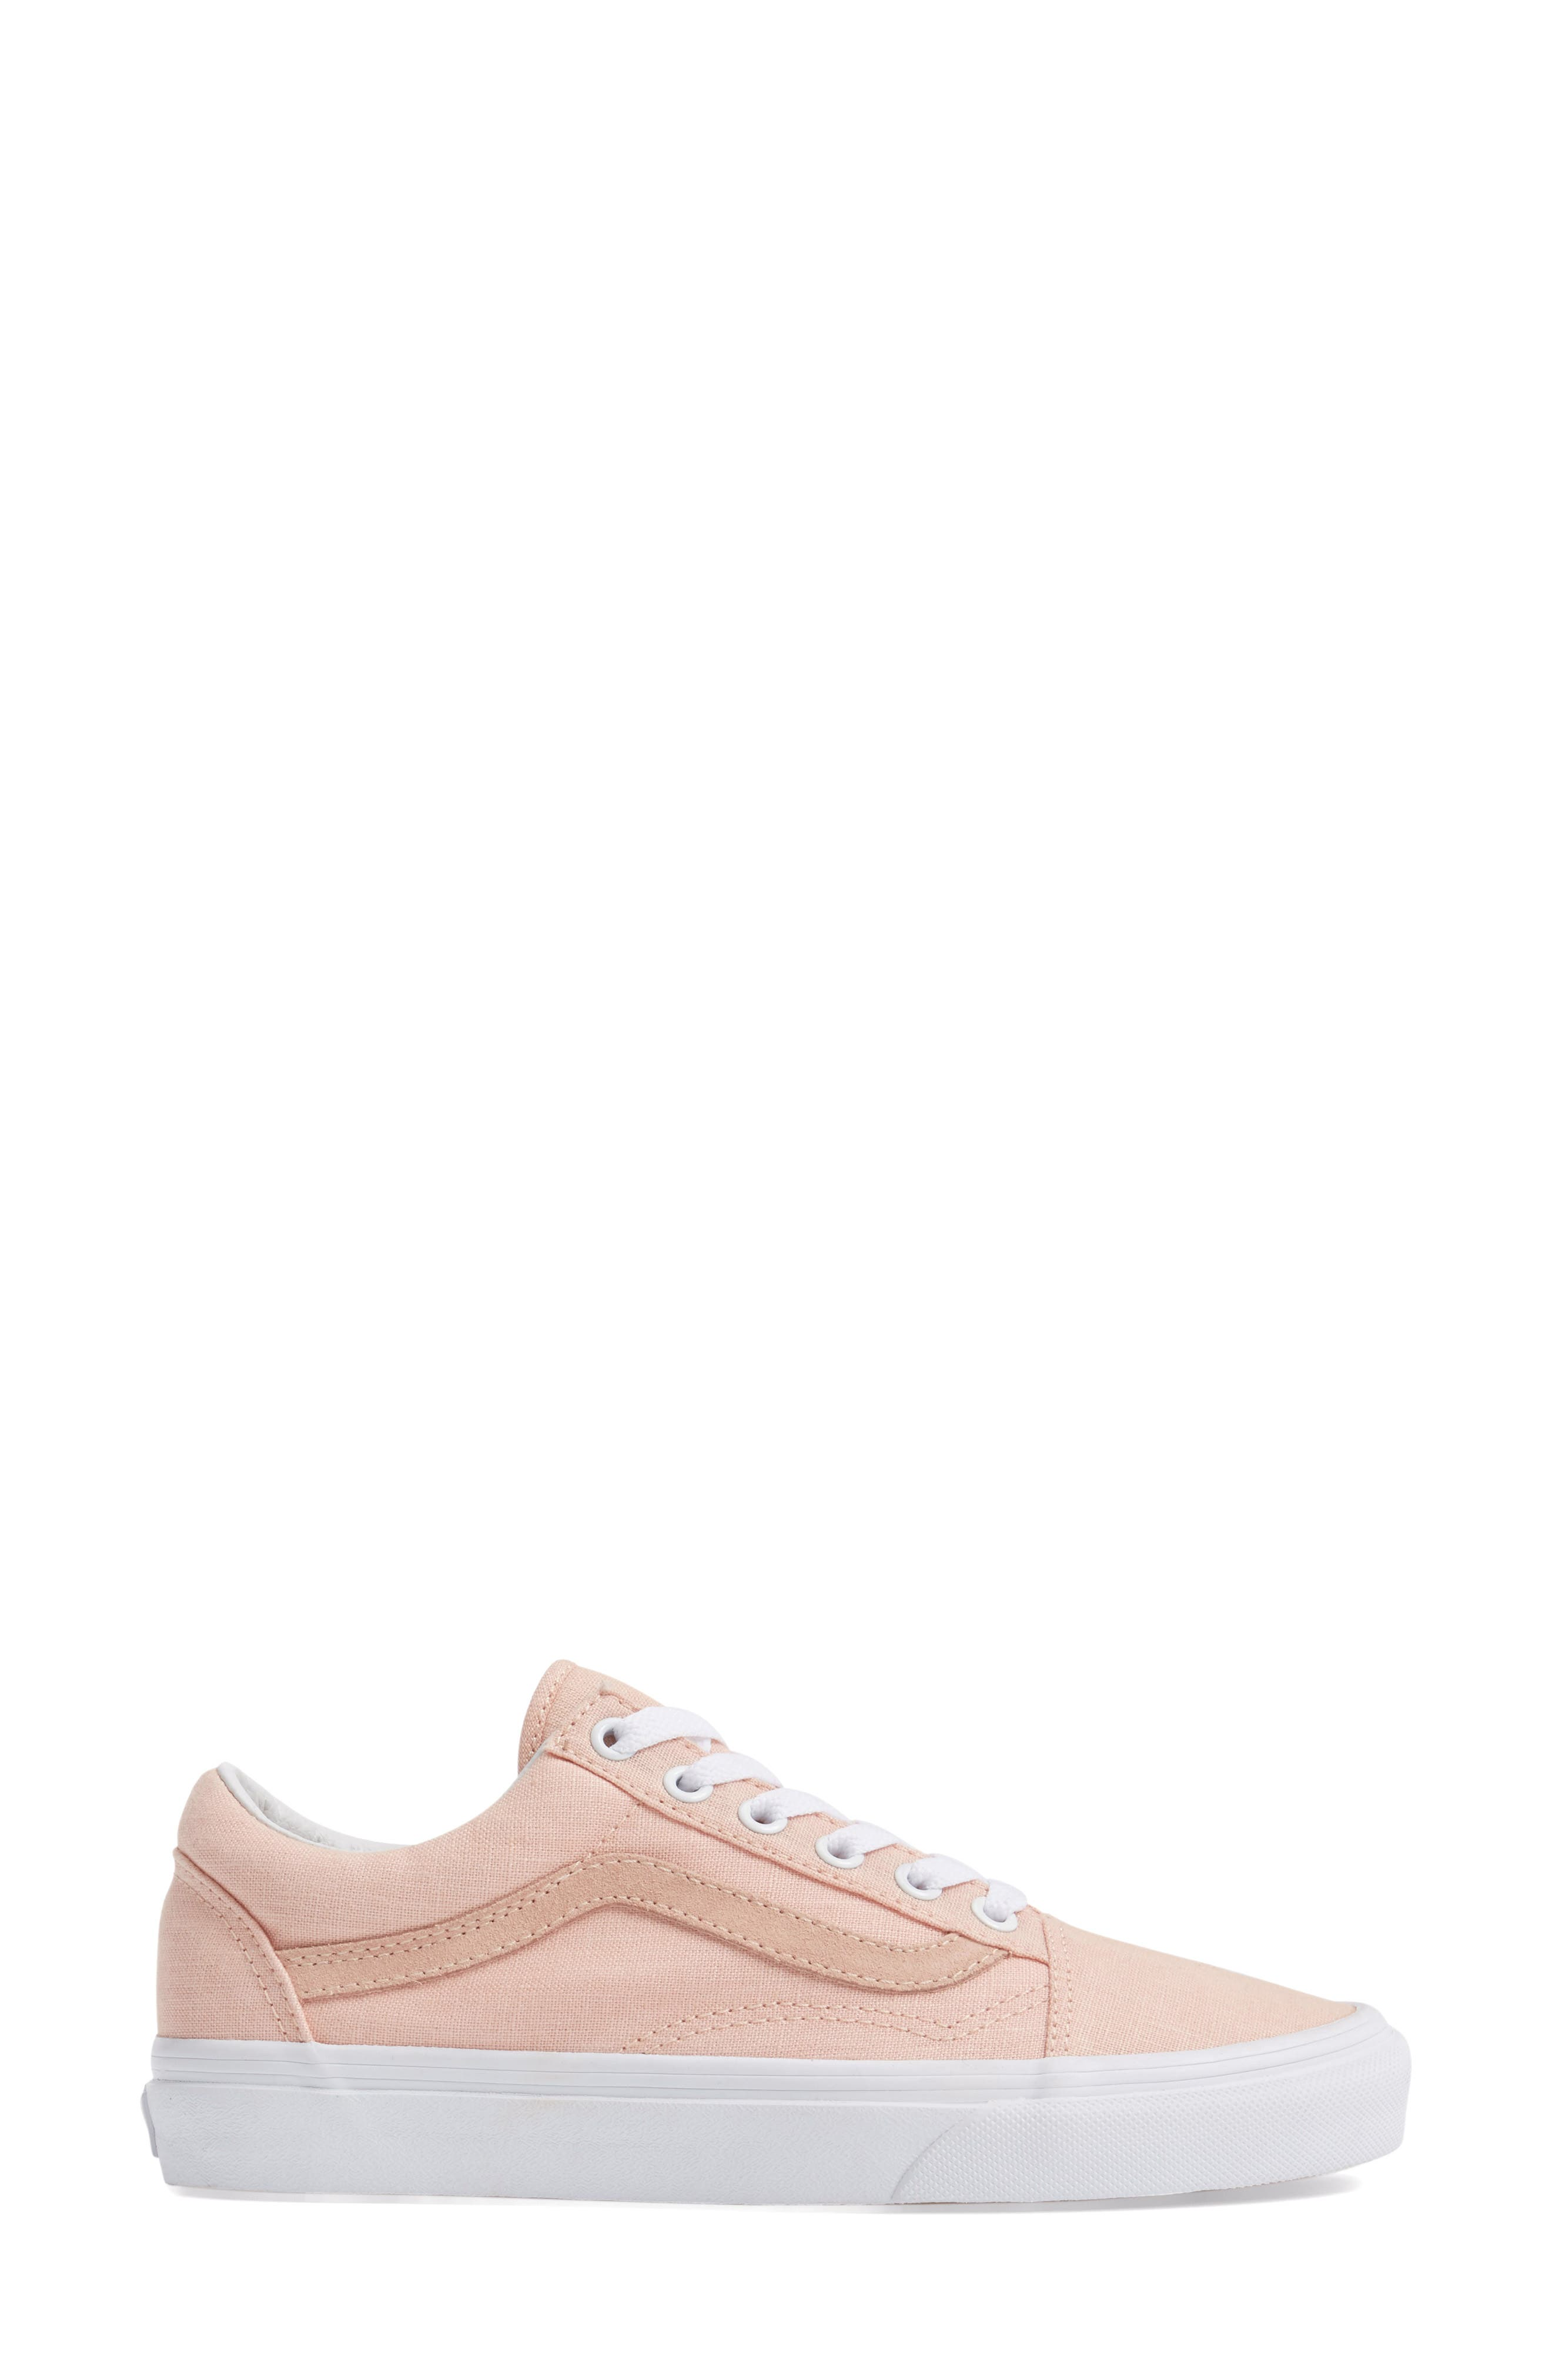 Alternate Image 3  - Vans Old Skool Sneaker (Women)